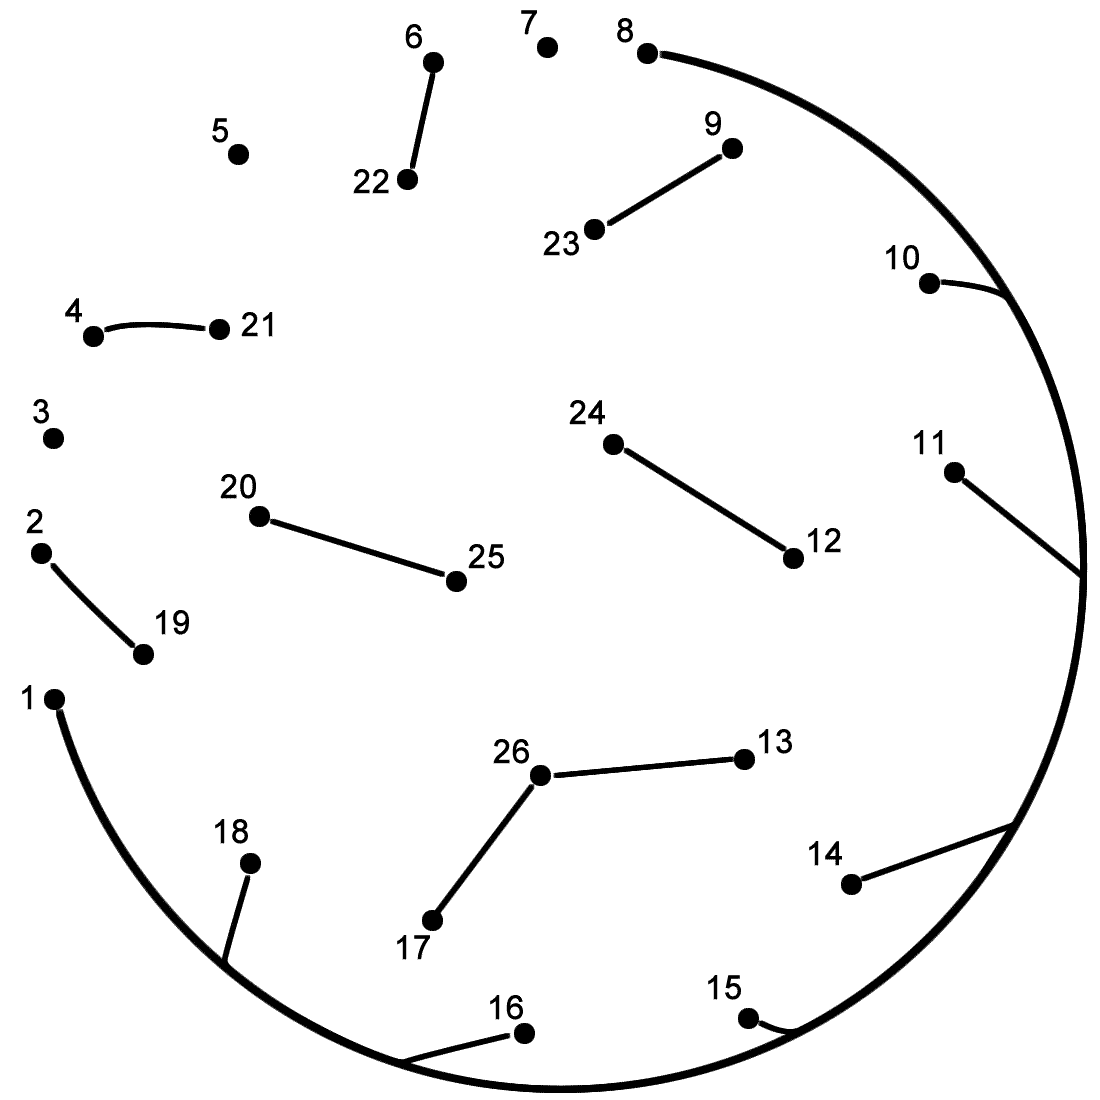 connect the dots - Soccer ball (numbers 1-26)